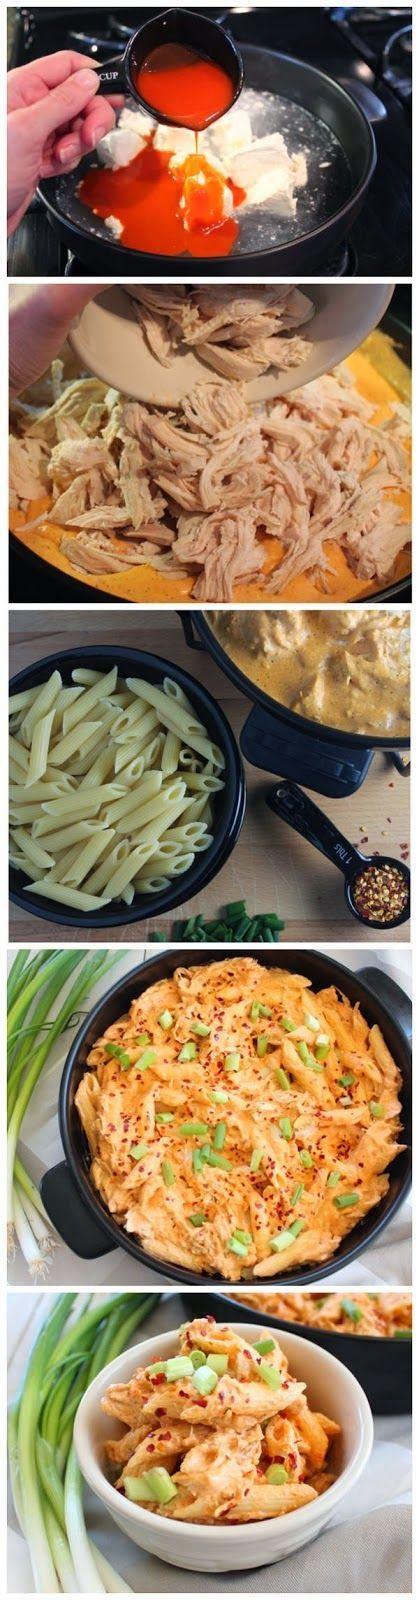 Buffalo Chicken Cheesy Penne: